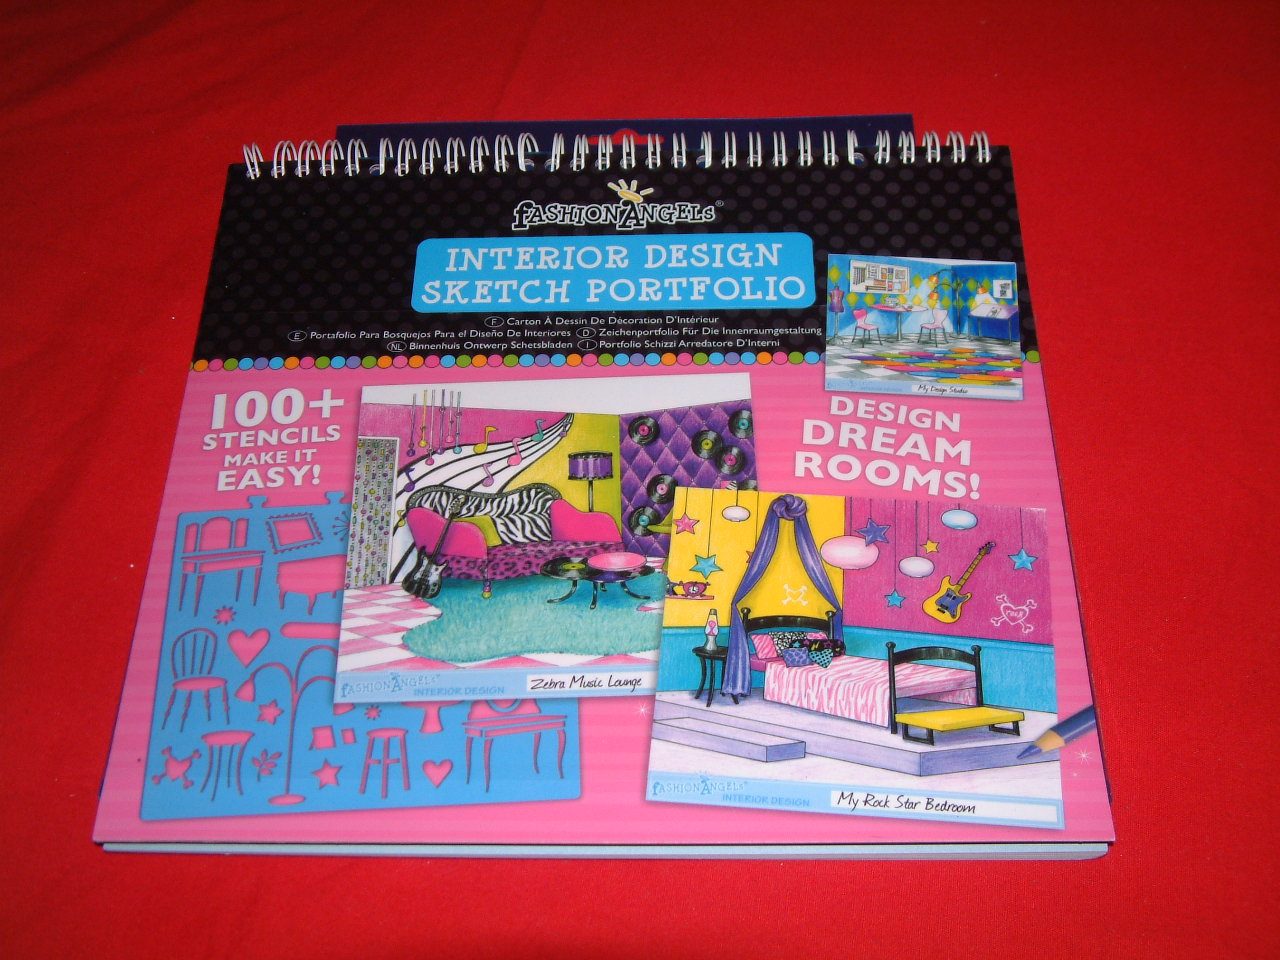 Bizzimommi 39 S Blog Fashion Angels Sketch Portfolios Review And Giveaway